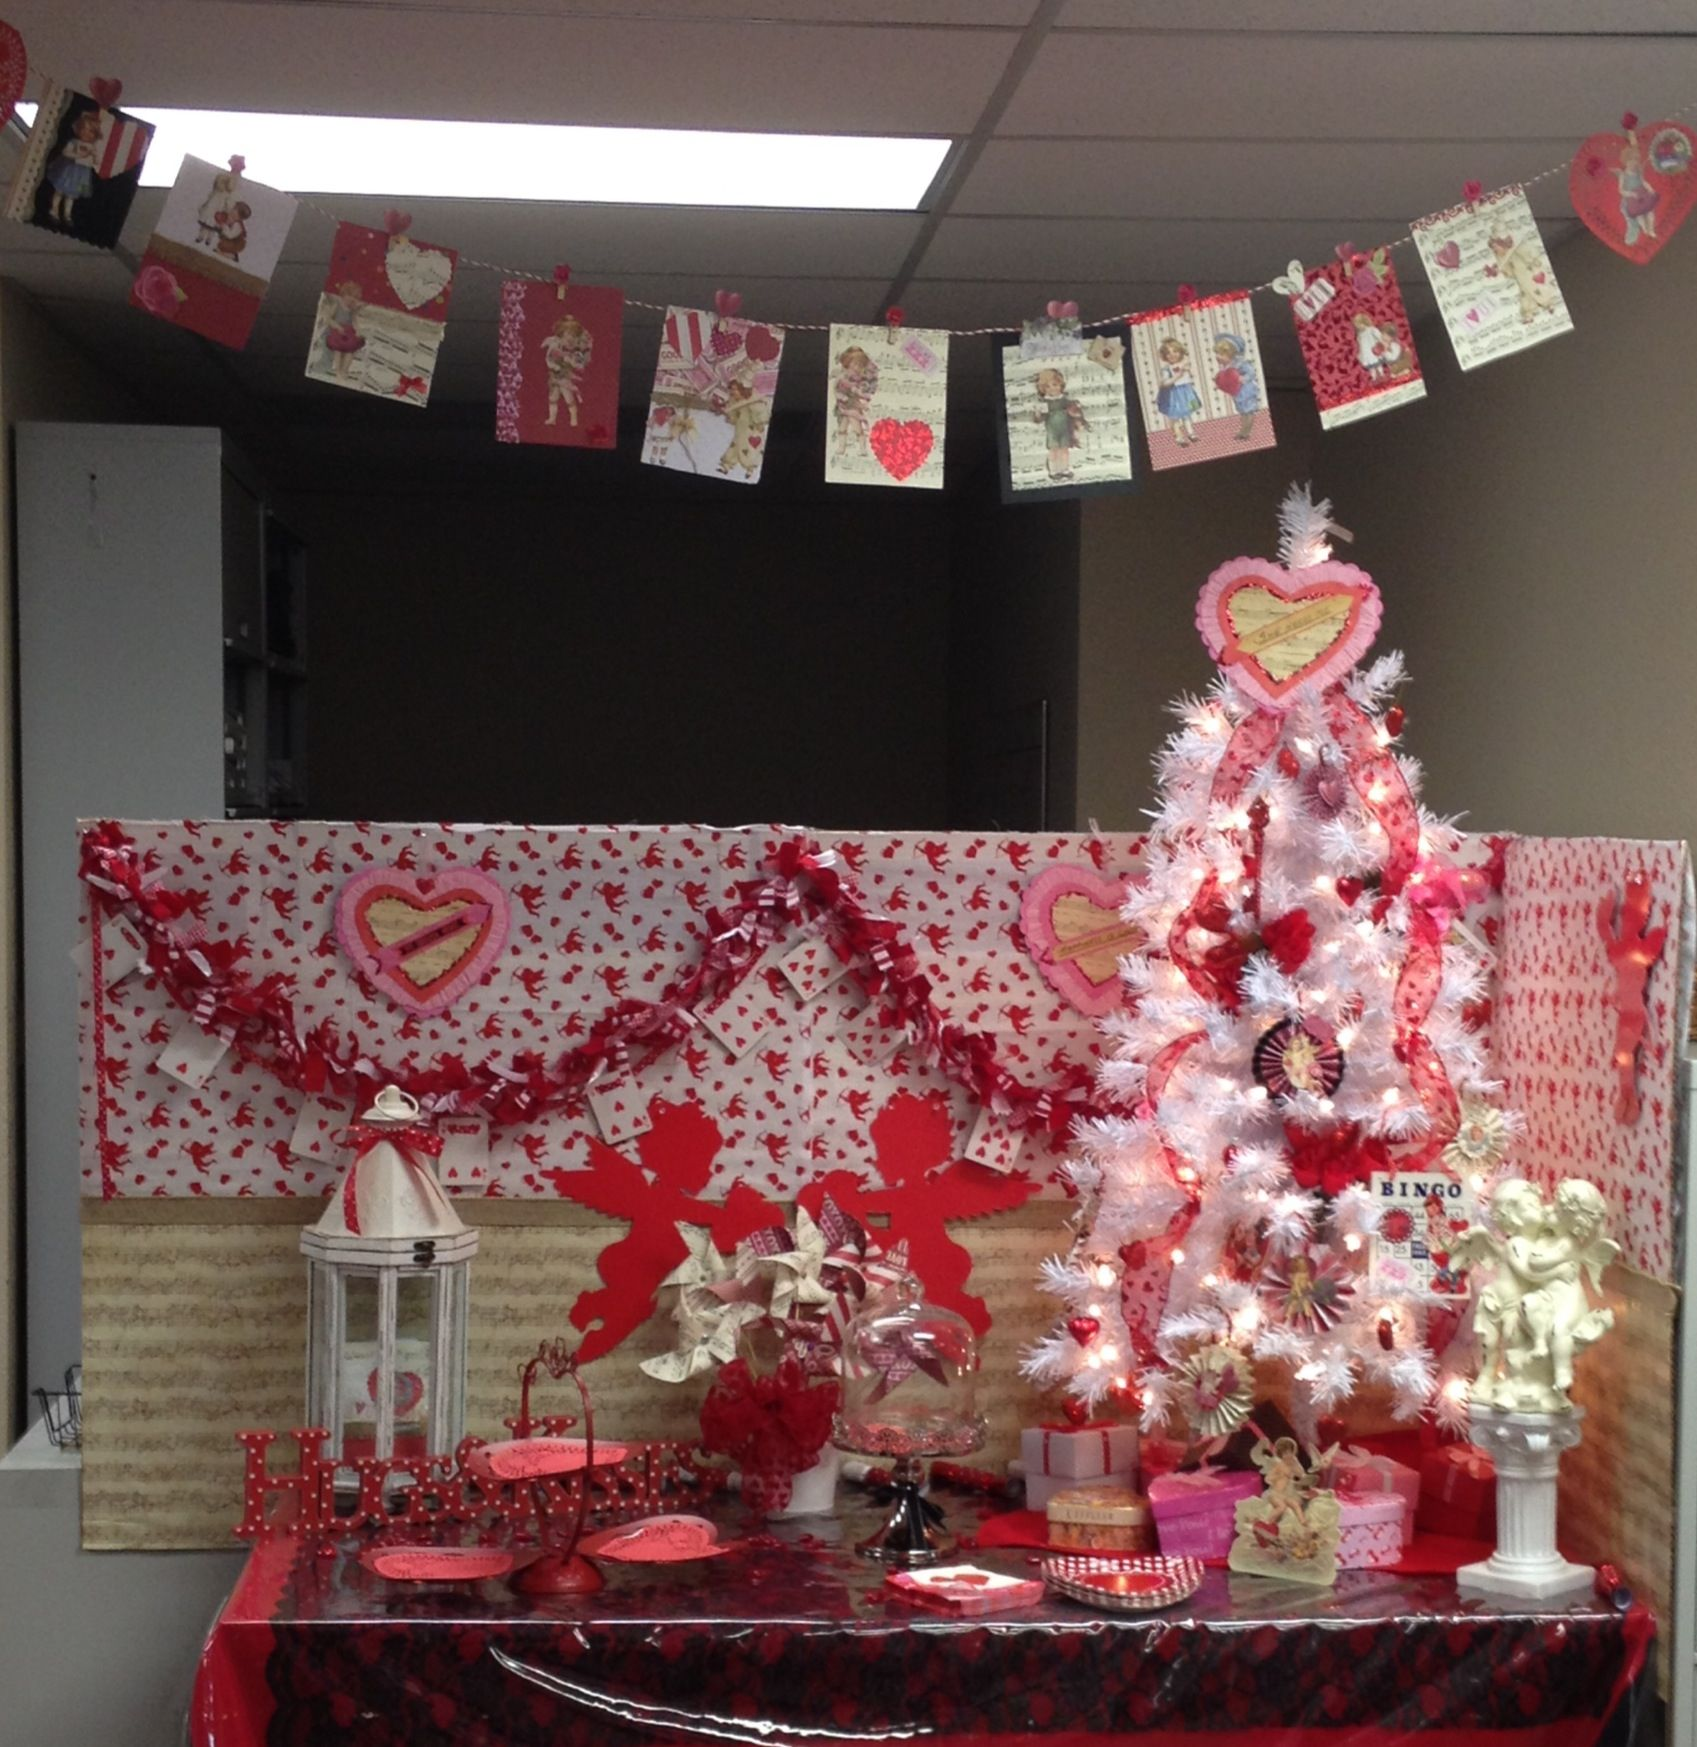 valentines ideas for the office. my office potluck decorations thank you pinterest for the wonderful ideas valentines f